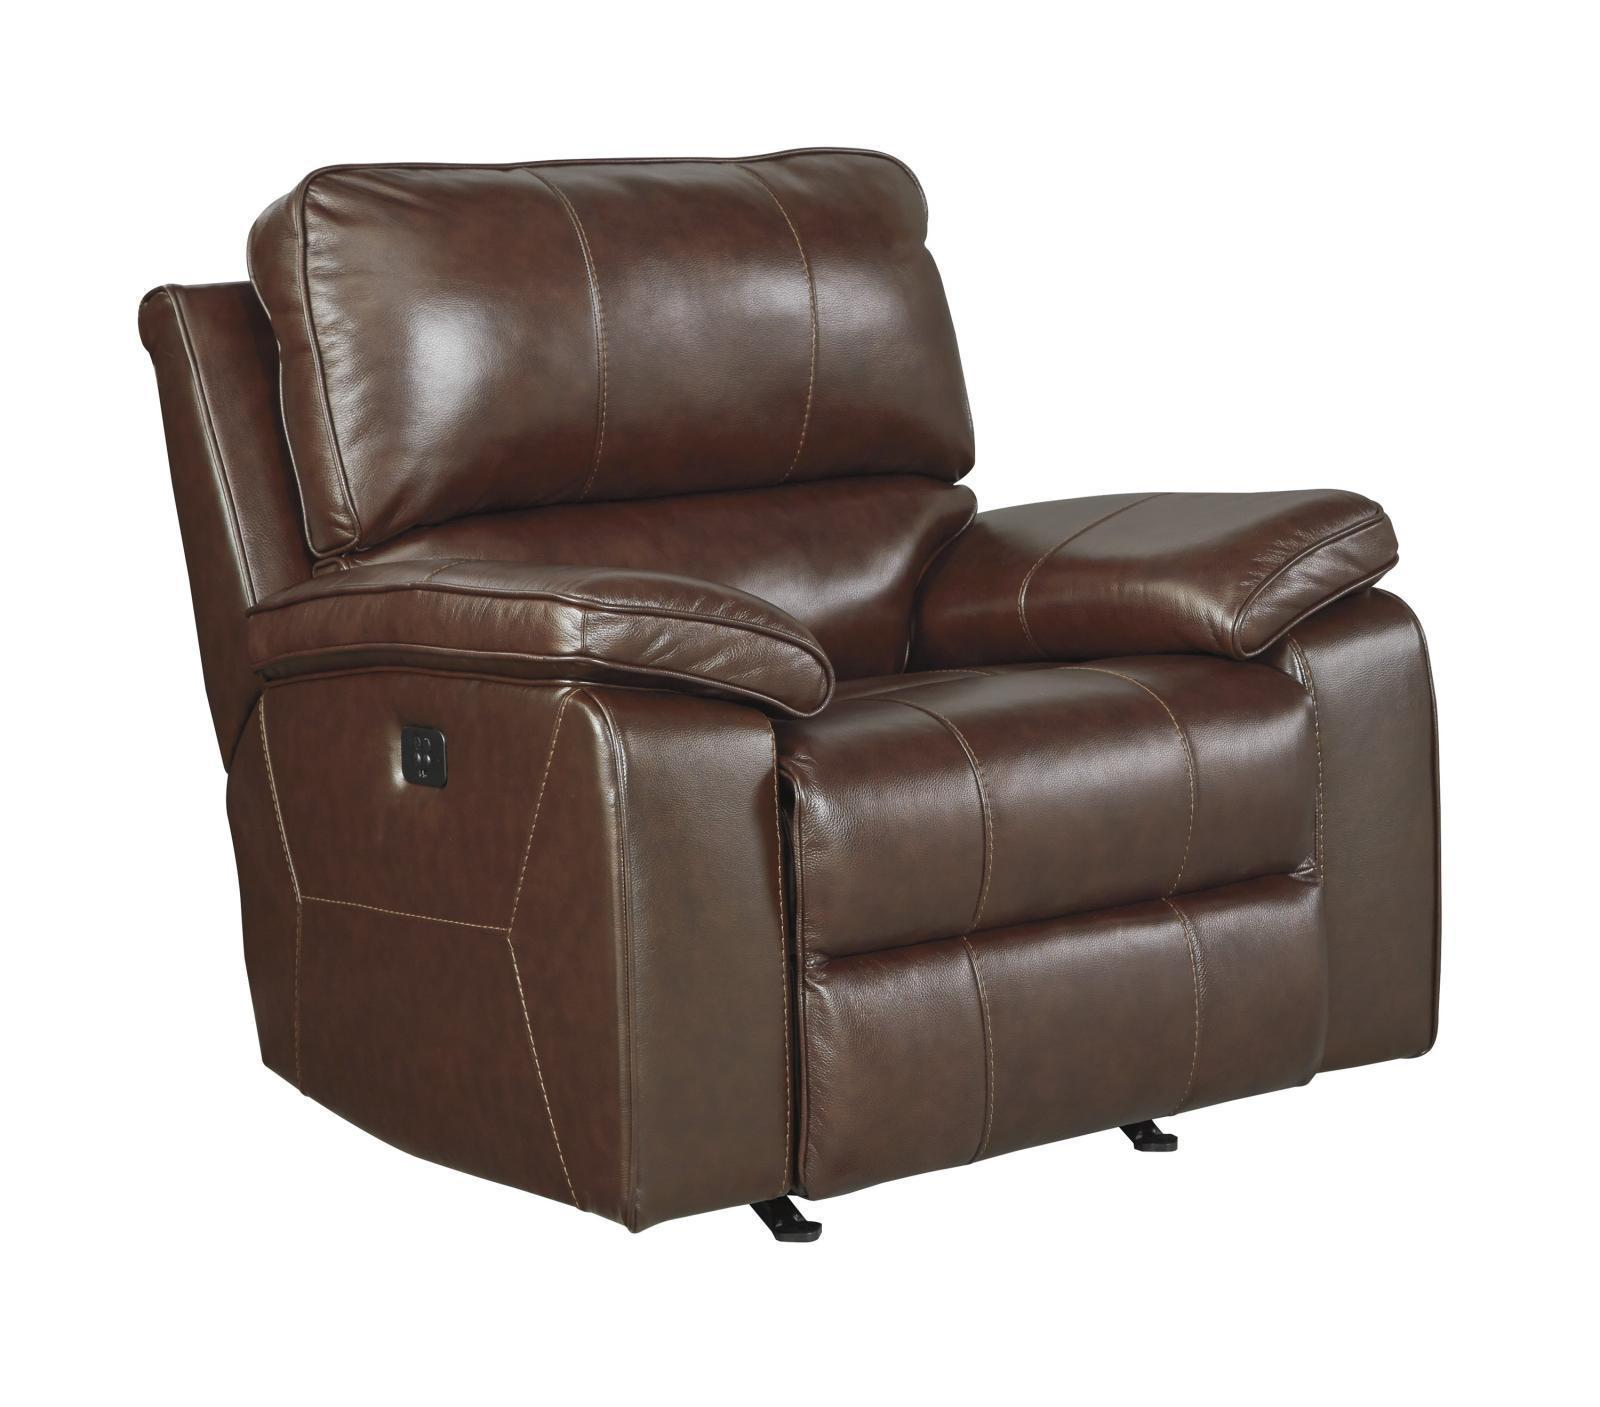 Ashley Transister Living Room Power Rocker Recliner in Coffee Contemporary